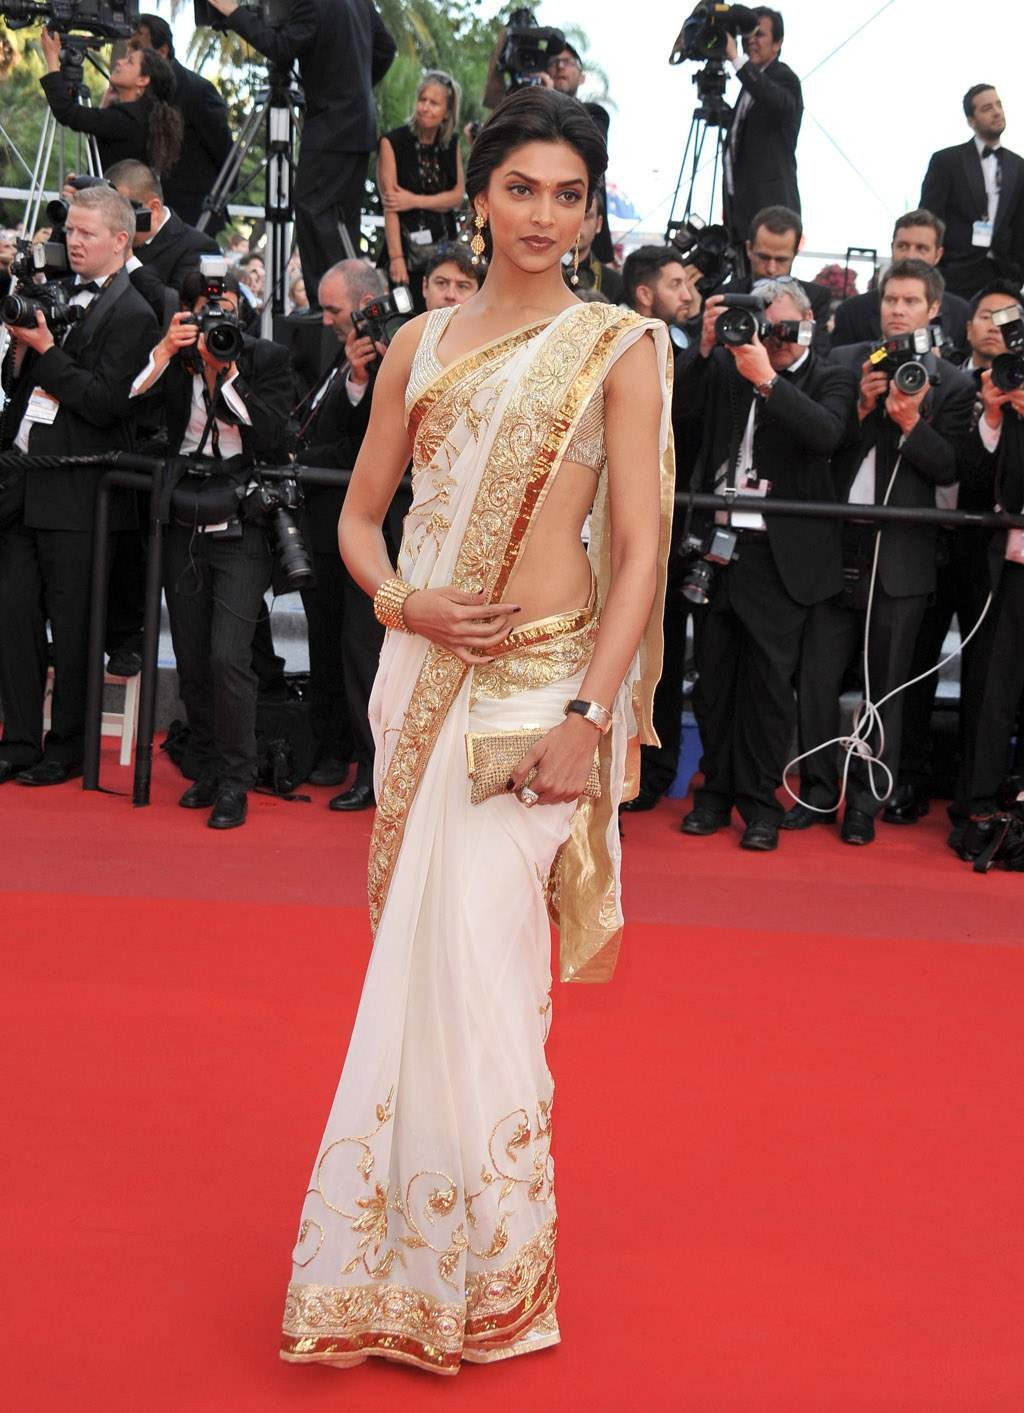 Deepika with a golden clutch to suit the occasion.